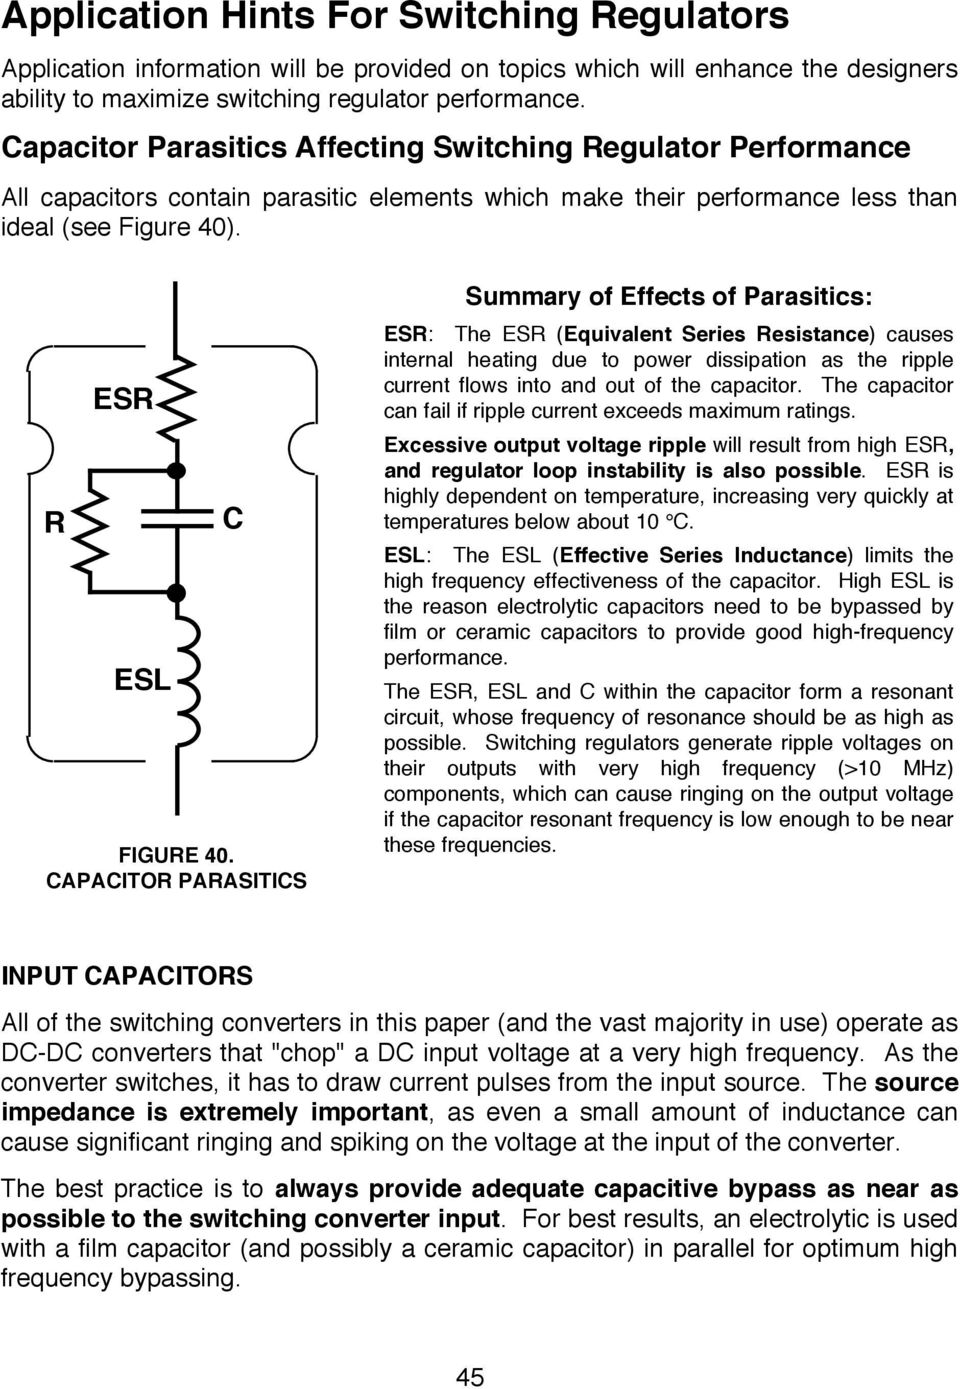 Switching Regulators Pdf 3 Output Isolated Flyback Regulator Circuit Diagram Using Lm2577 Capacitor Parasitics Summary Of Effects Esr The Equivalent Series Resistance